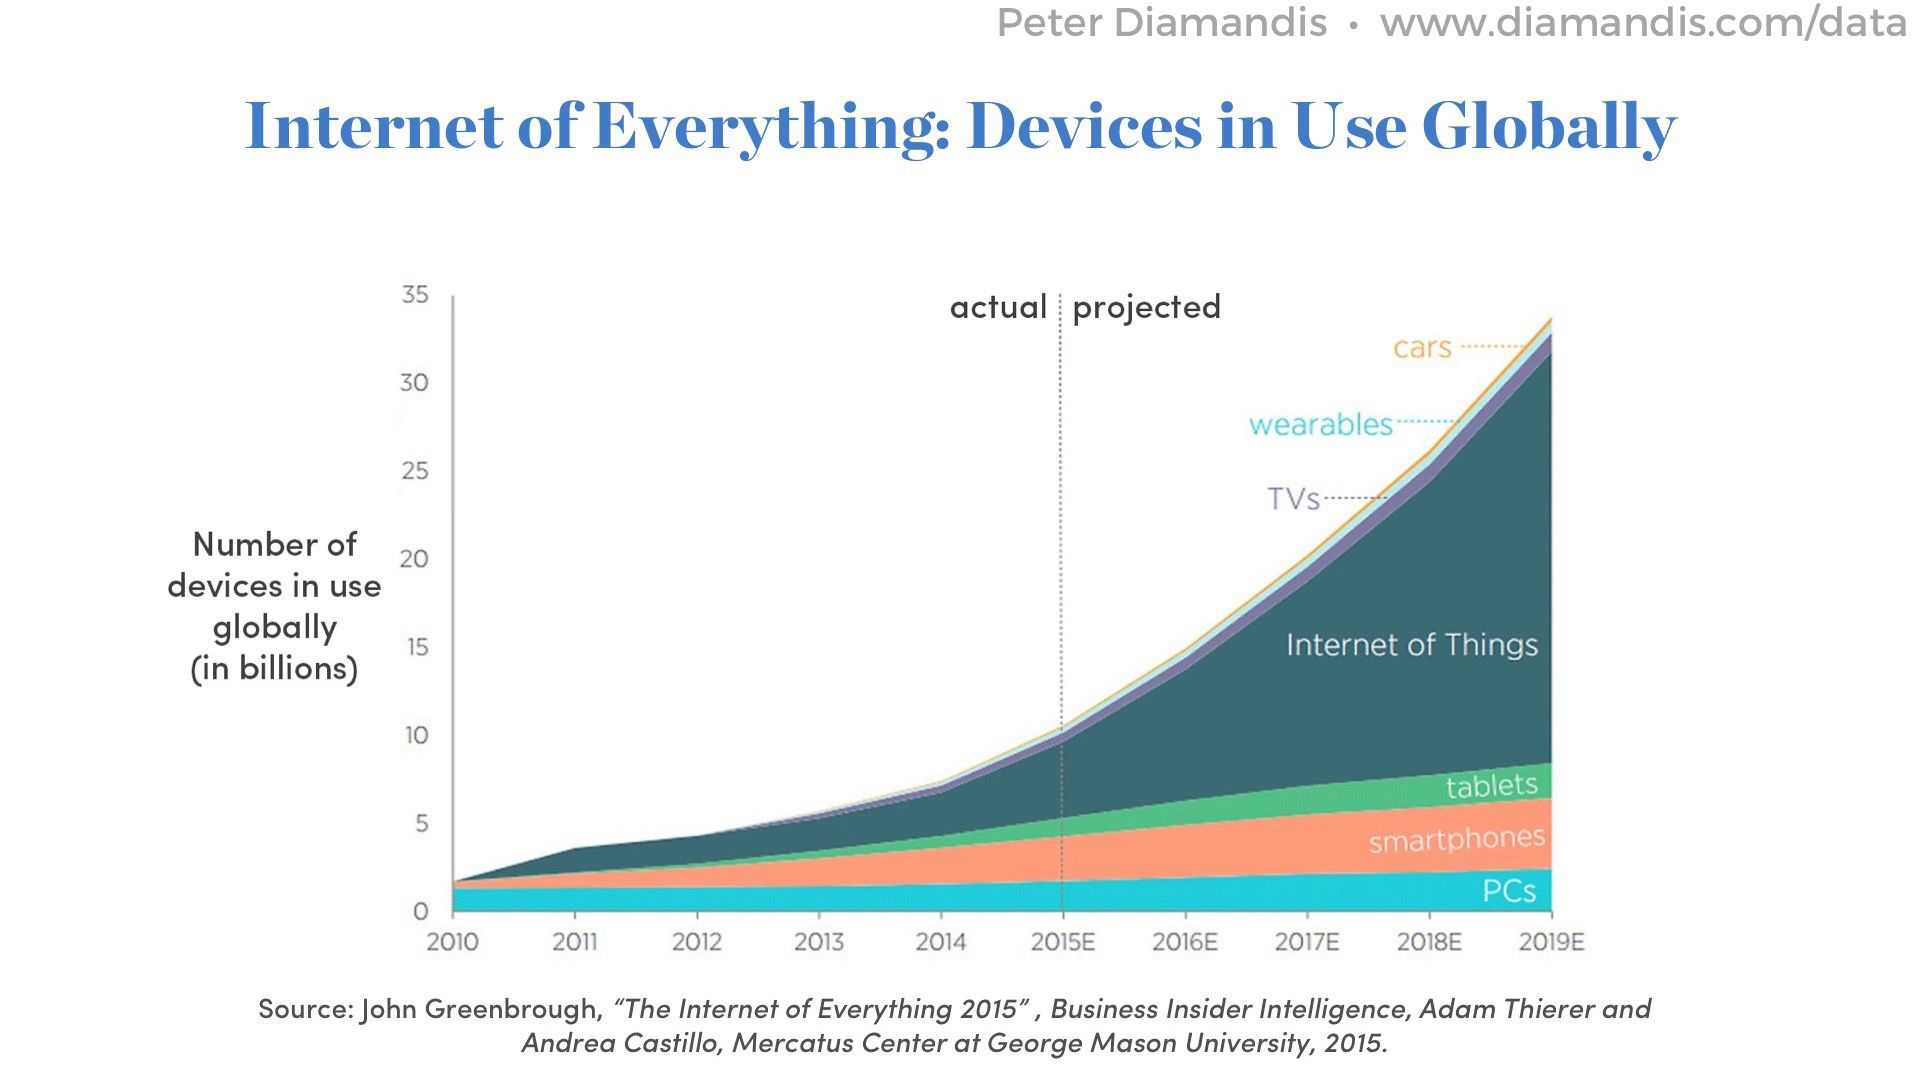 Internet-of-Everything-Devices-in-Use-Globally